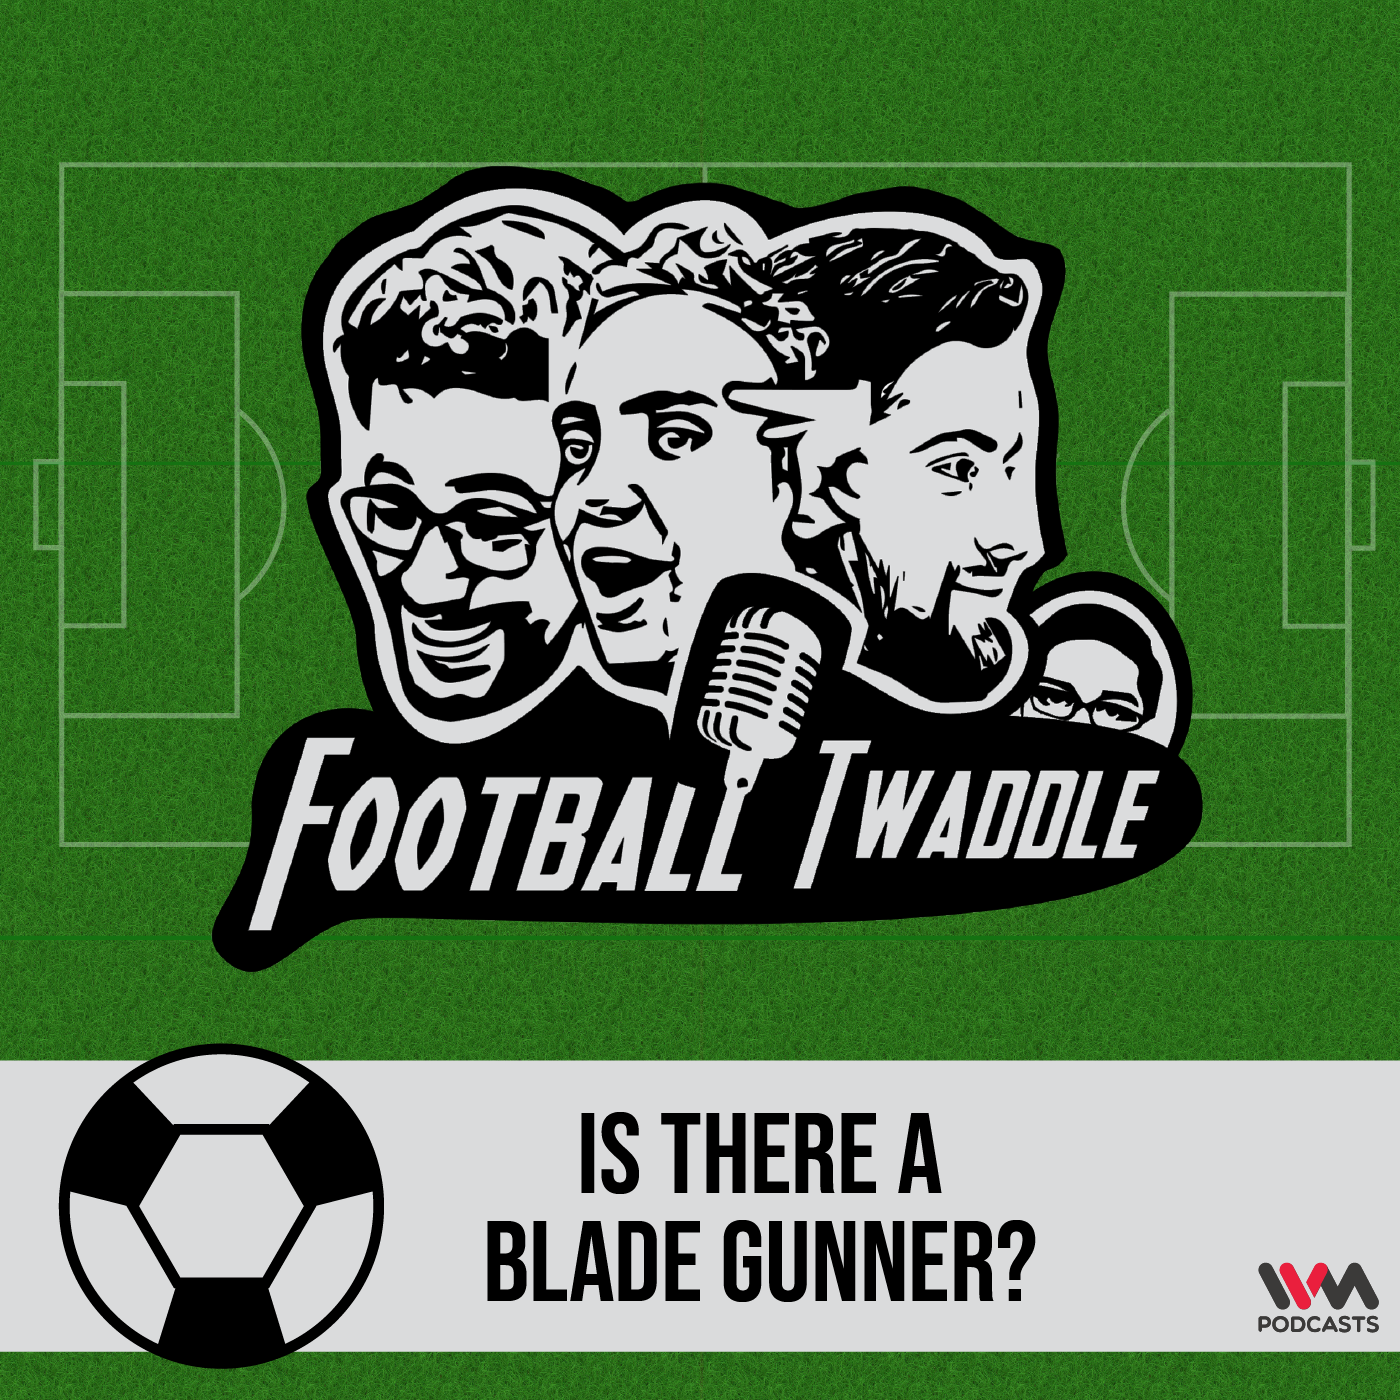 Is there a Blade Gunner?